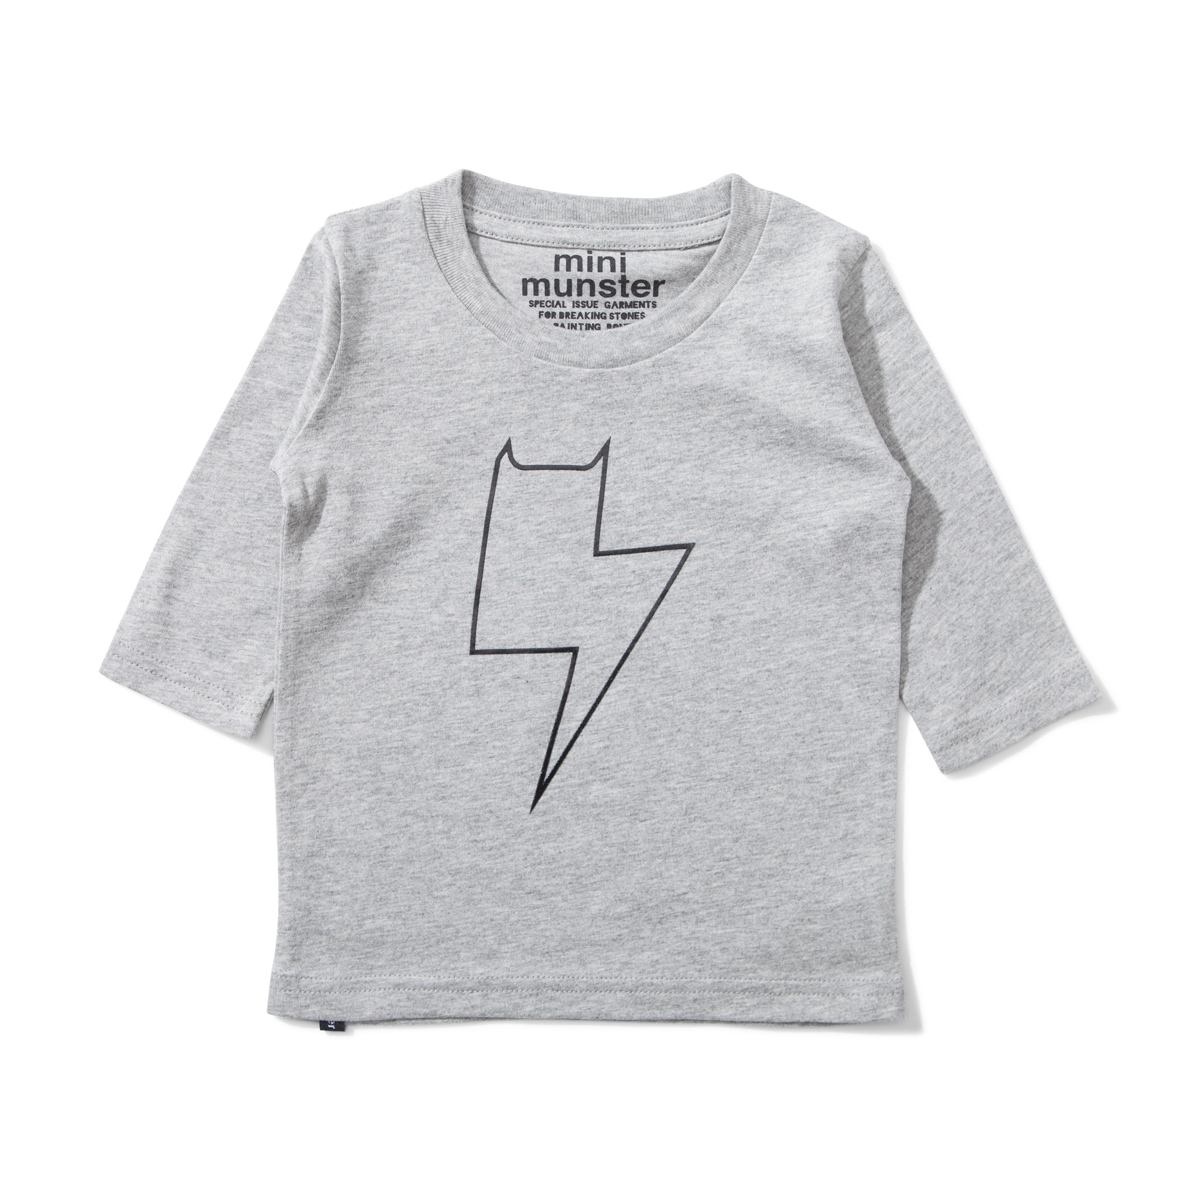 Munster Kids Plugged In Short Sleeve Tee in Grey